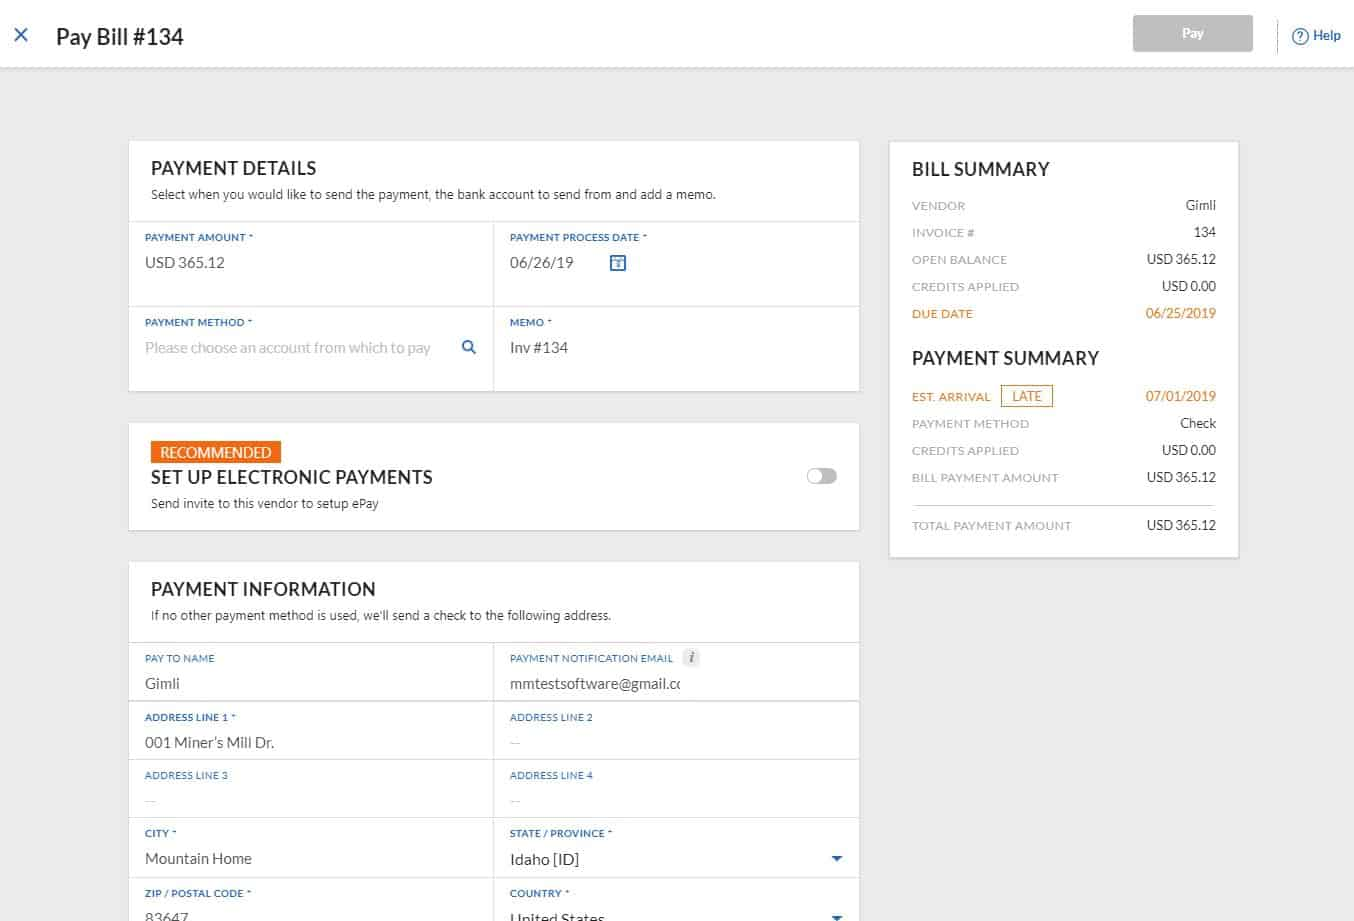 review of bill.com's accounts payable features